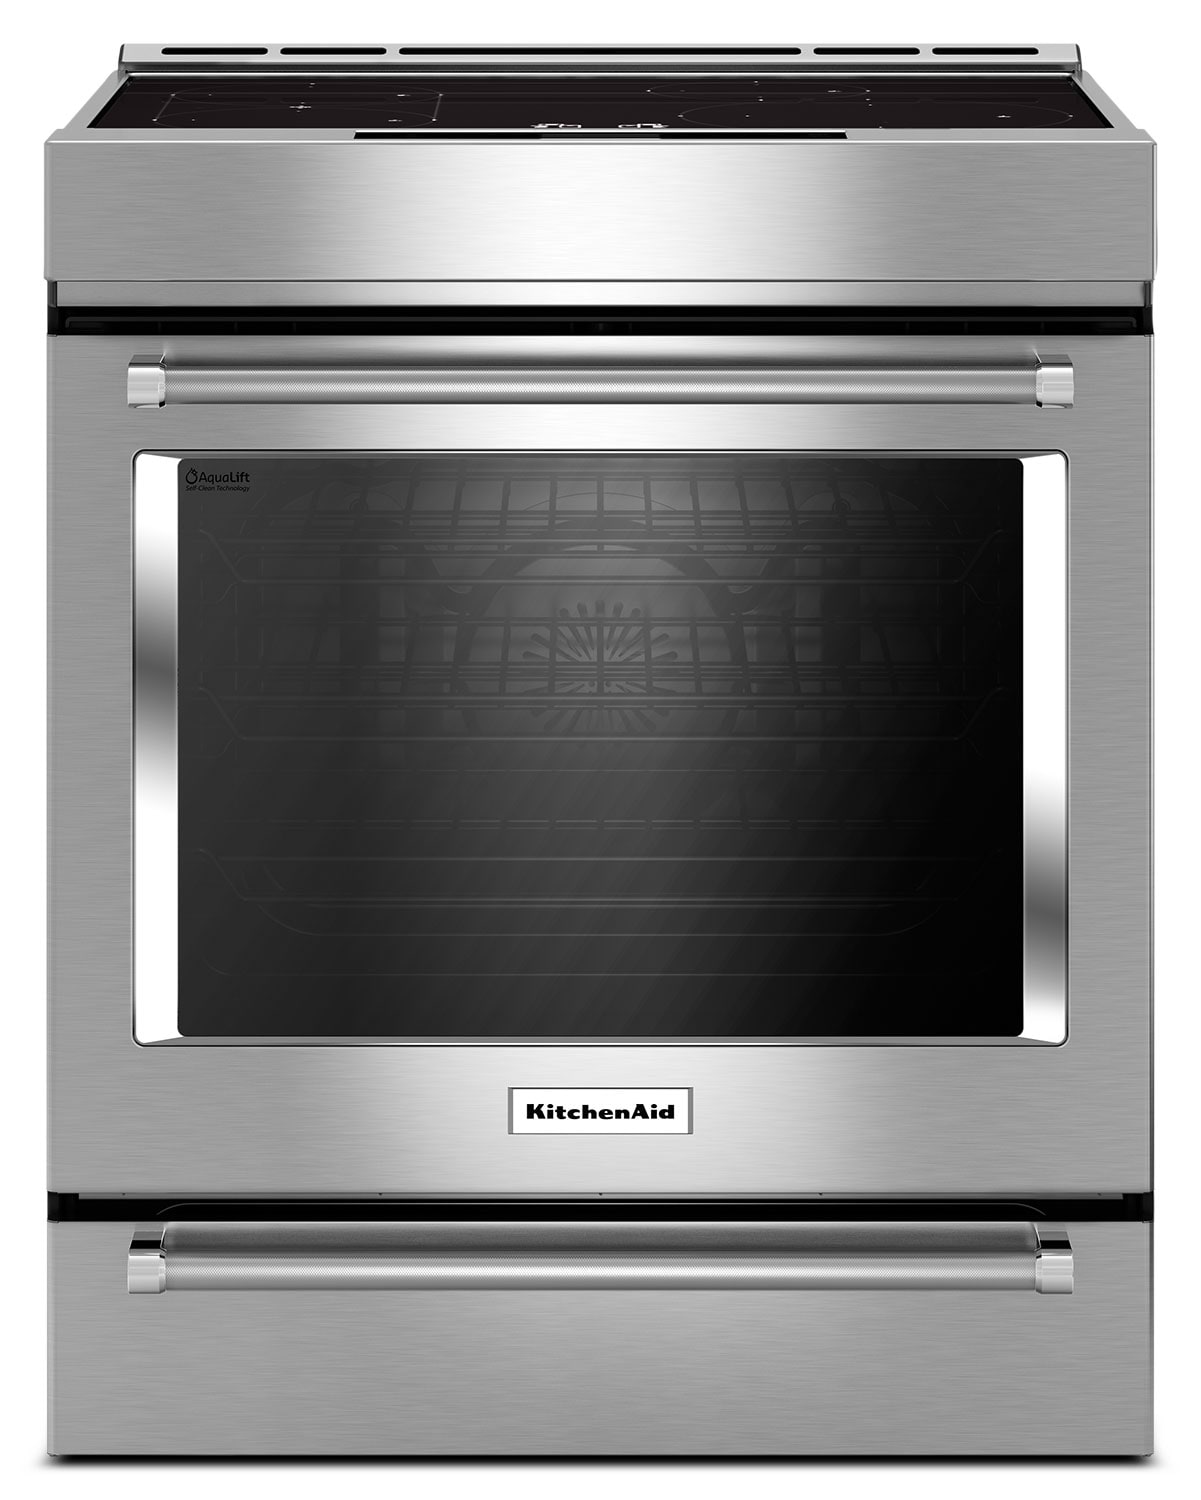 KitchenAid Stainless Steel Slide-In Electric Range (7.1 Cu. Ft.) - KSIB900ESS